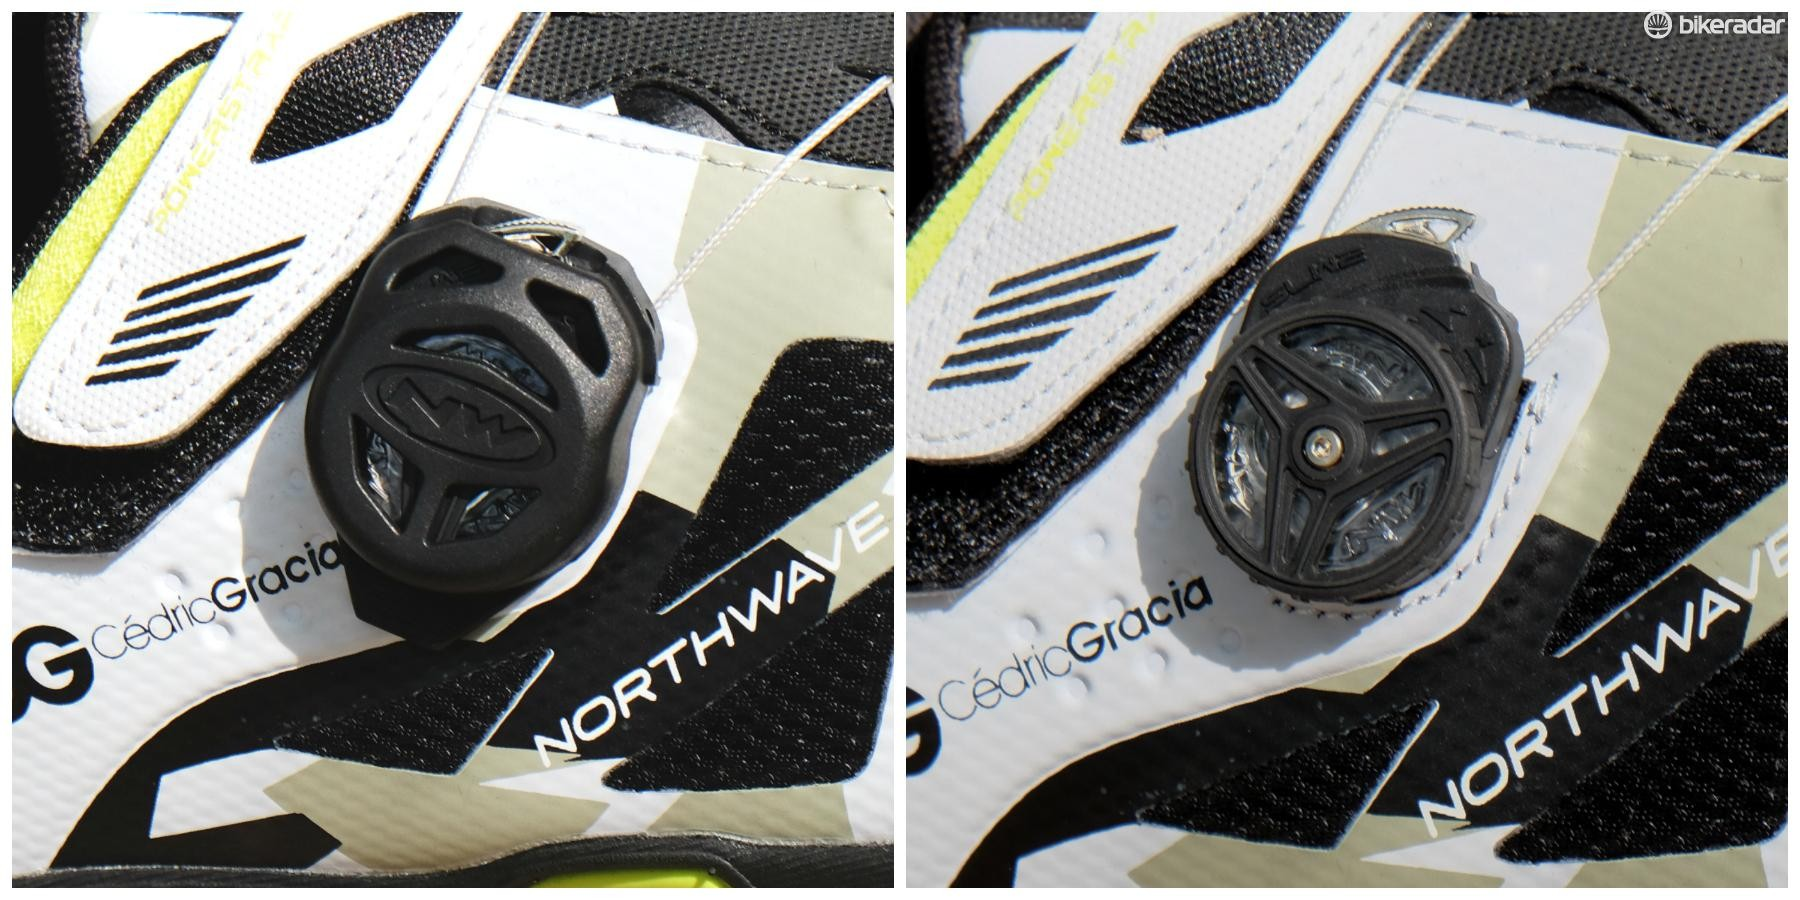 Northwave uses its own cable-tensioning system, rather than a Boa. There's also a cover to keep debris out of the reel